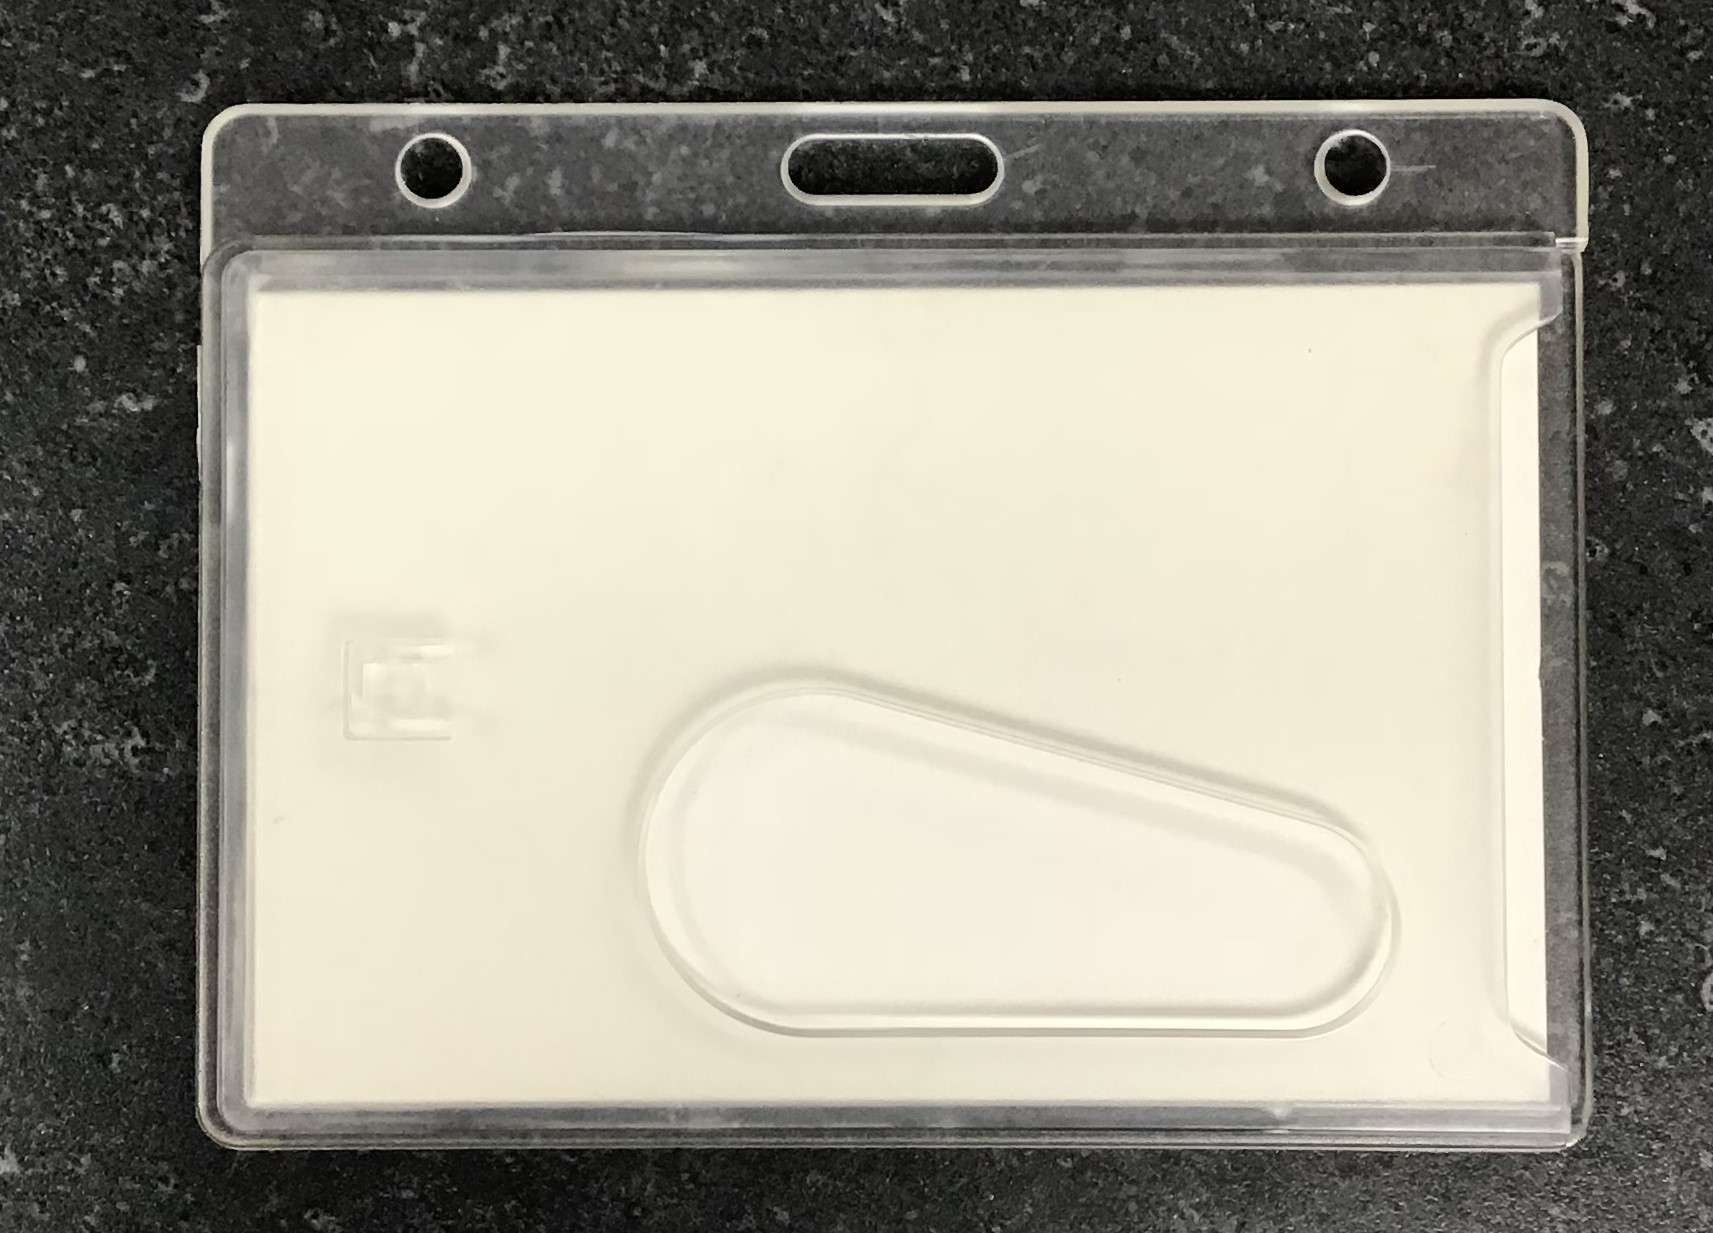 Image for the ID Dispenser Clear MCM product